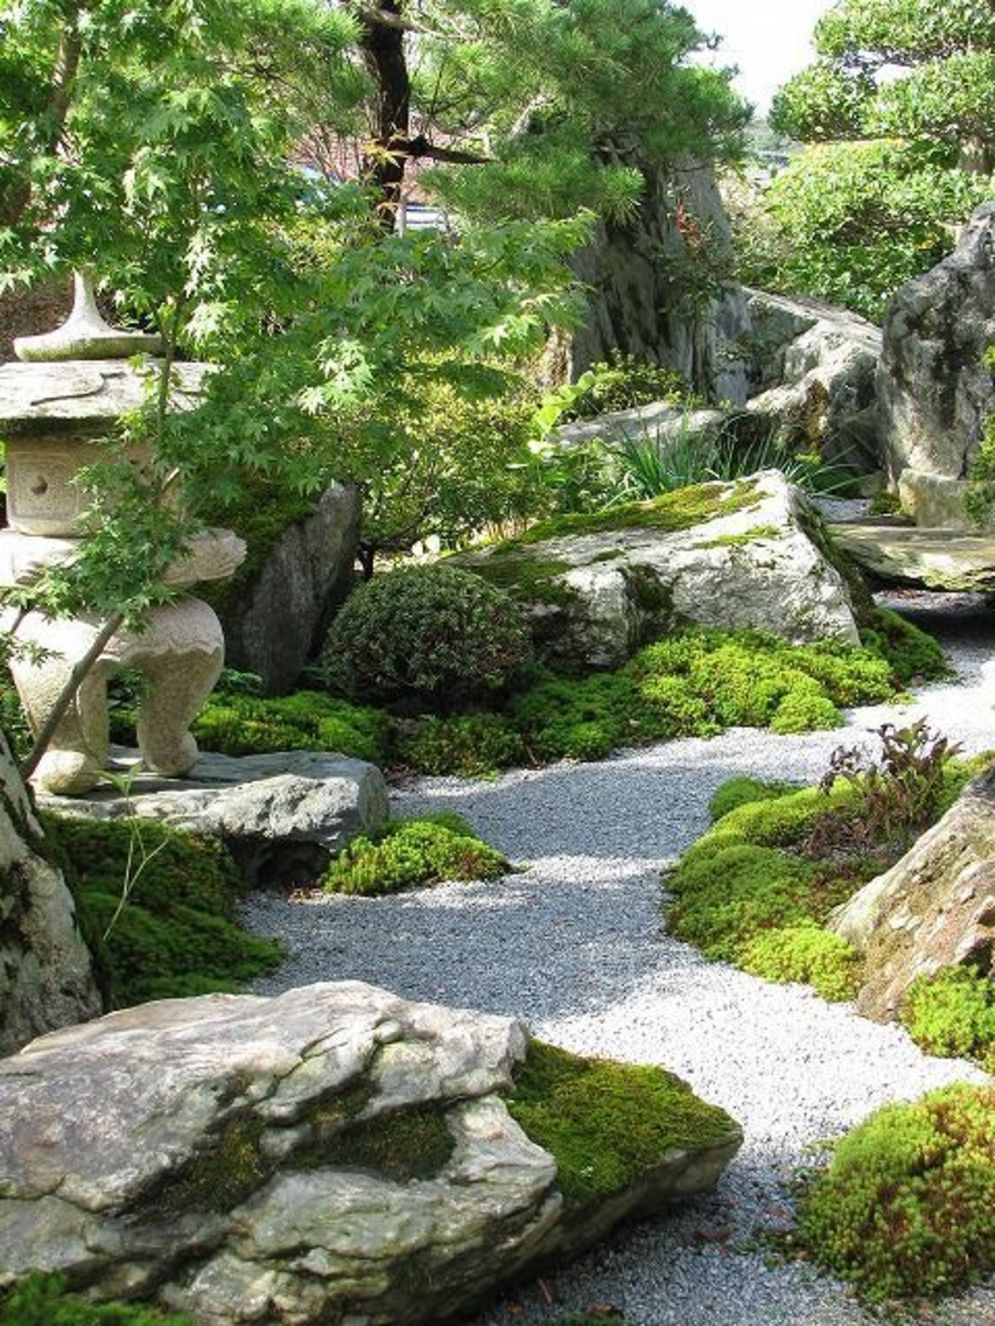 Beautiful Zen garden style with peaceful arrangements creating peaceful and harmonies display that will calm our mind Image 13